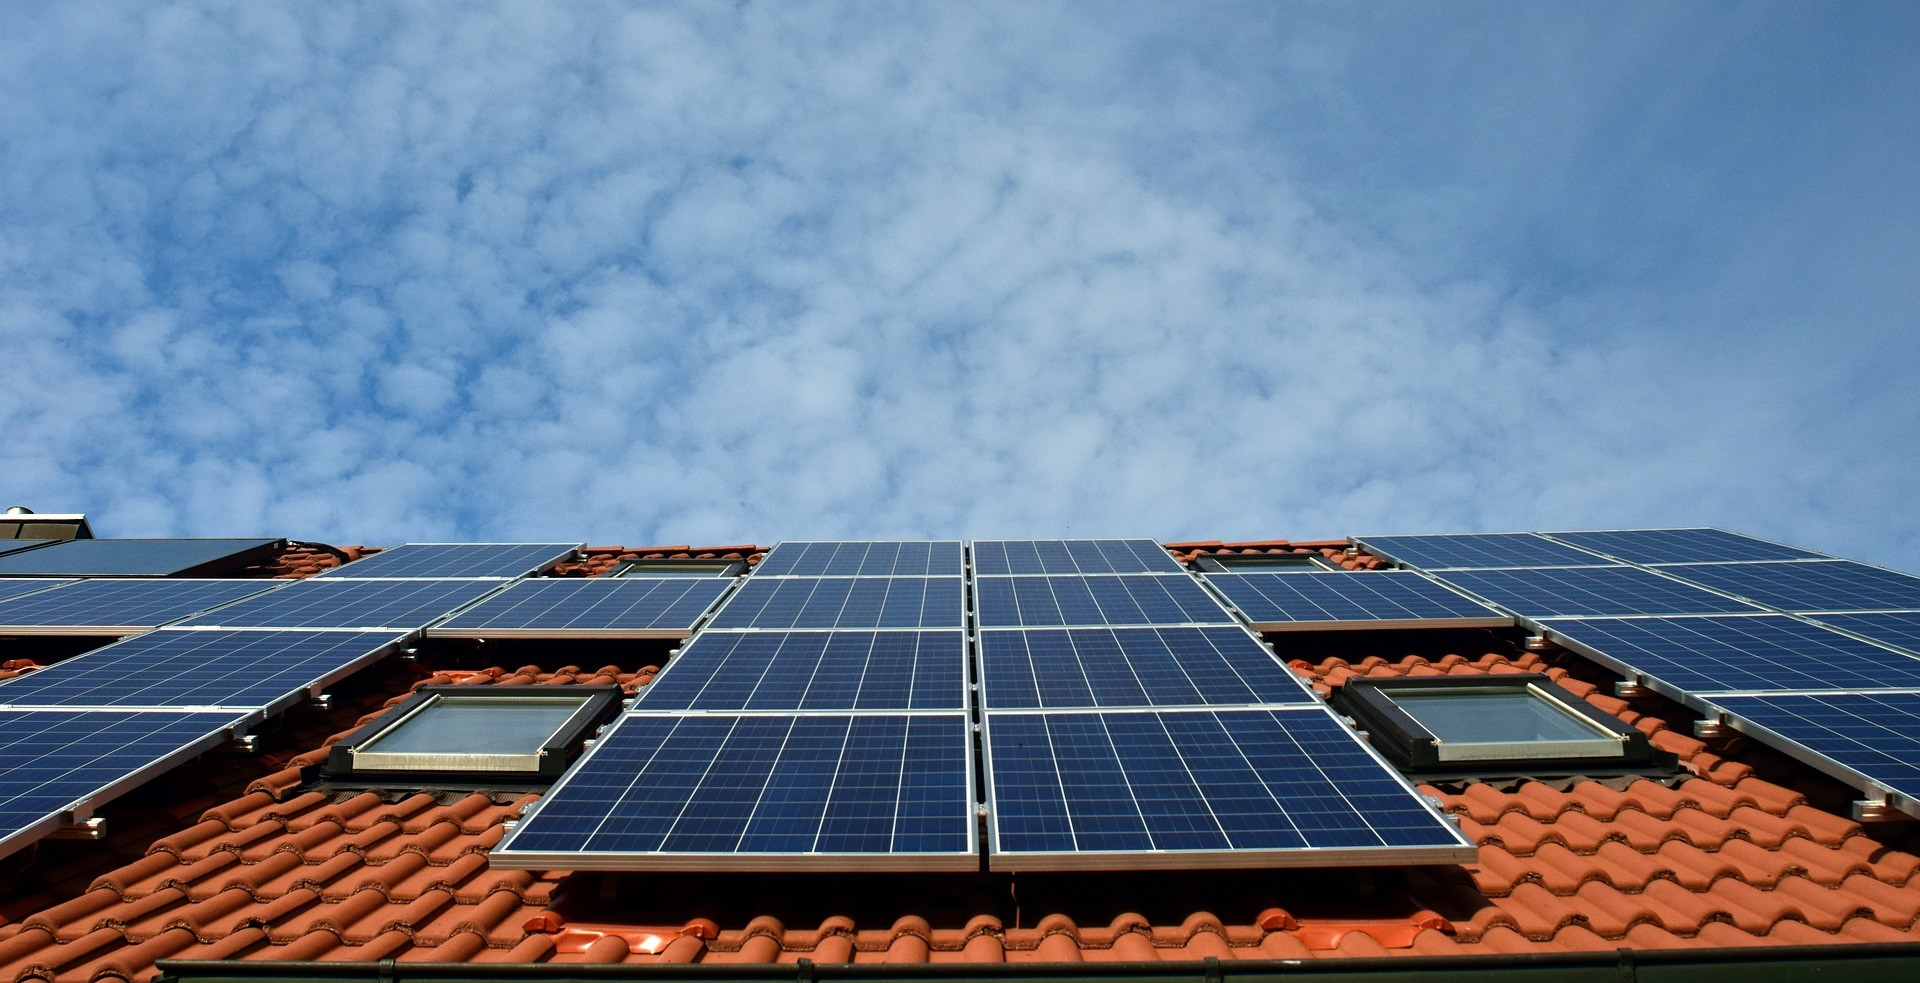 Energy Efficient Homes - How To Cut Down And Save Money On Your Energy Bills